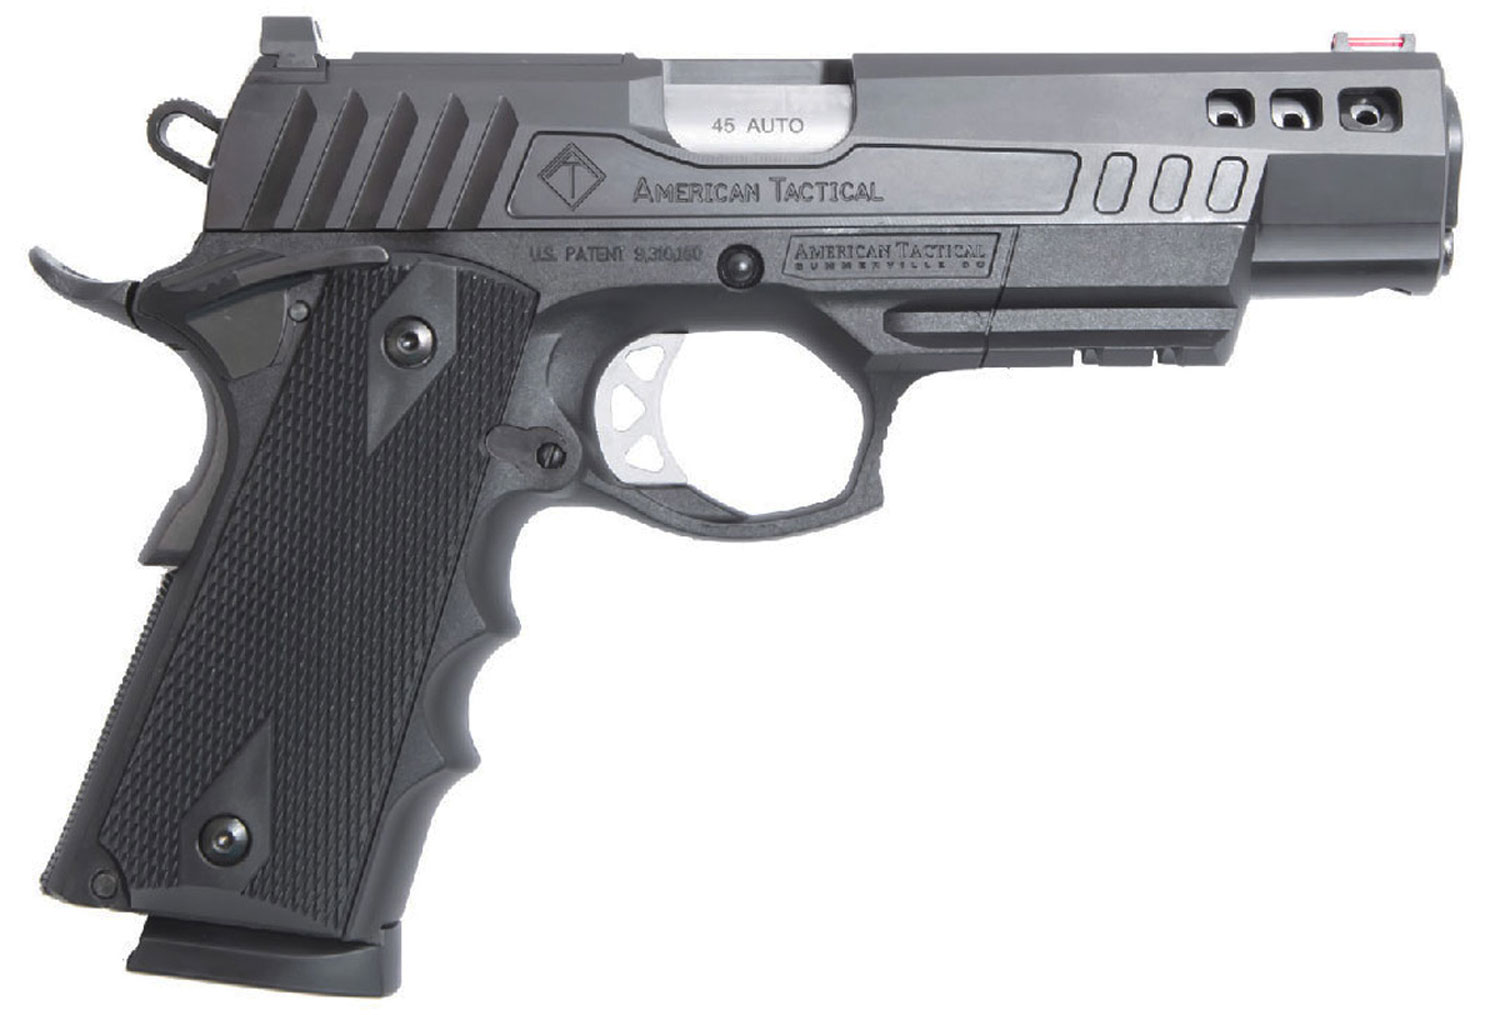 ATI ATIGFXH9 FXH-9 Hybrid Single 9mm Luger 5